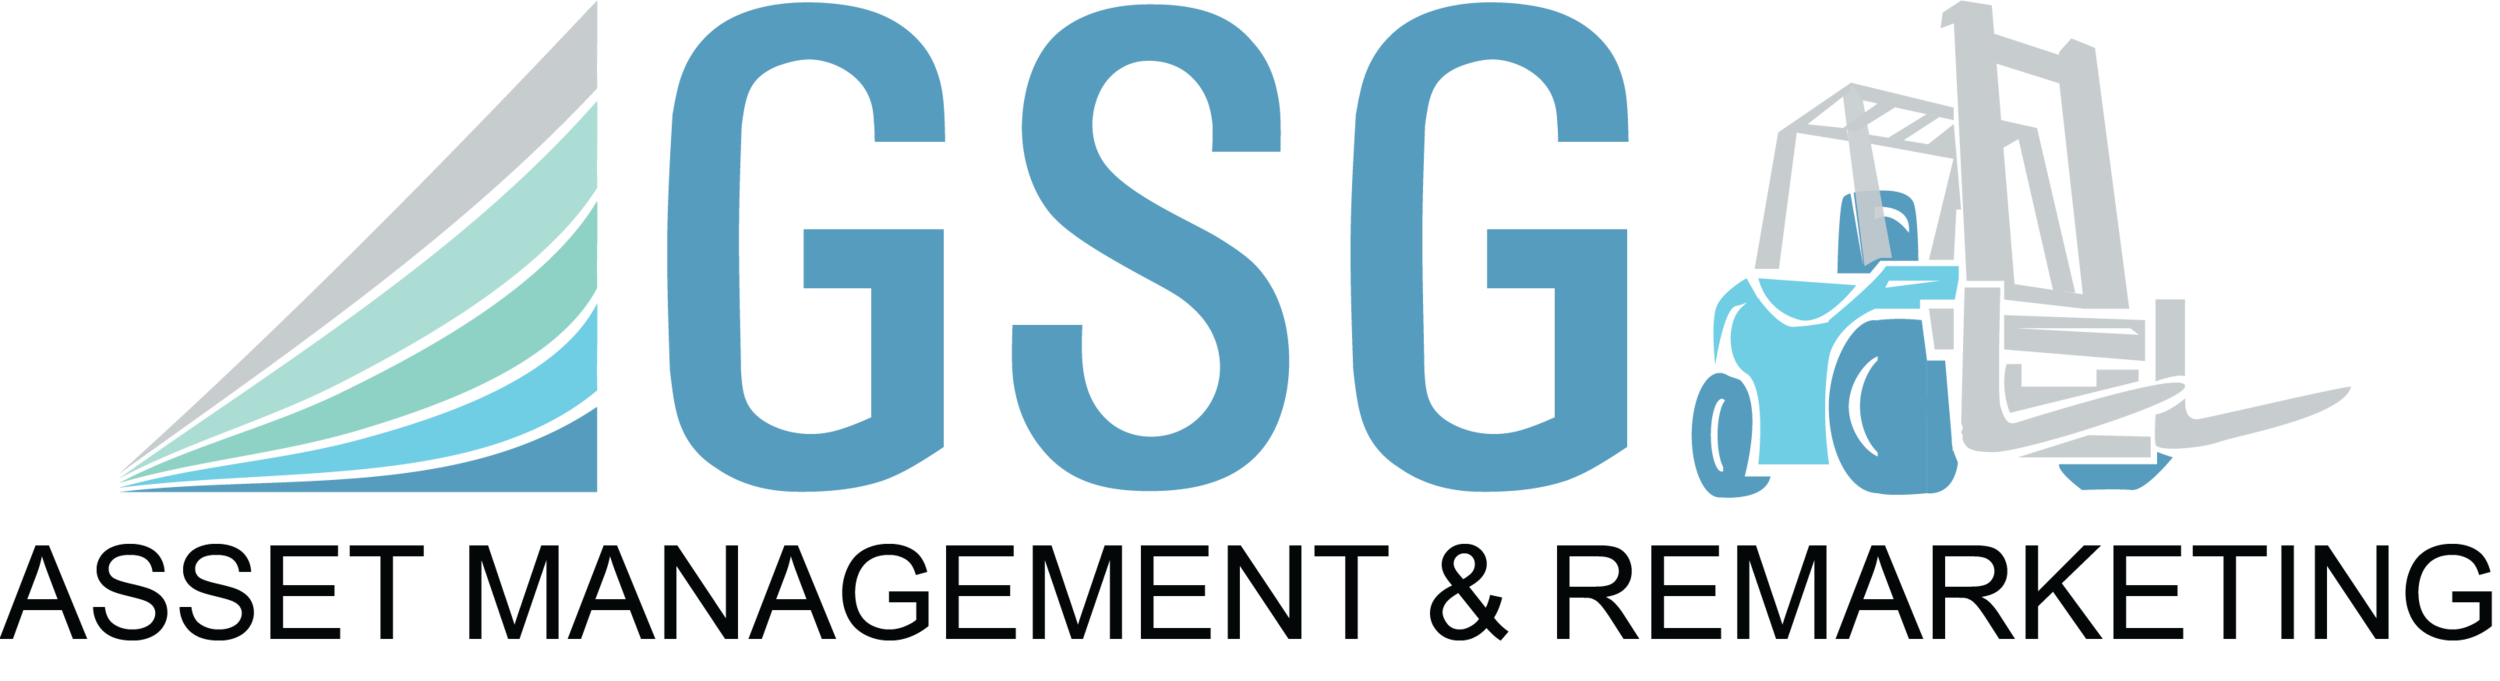 GSG AMR Logo - Black Text with Fork.png